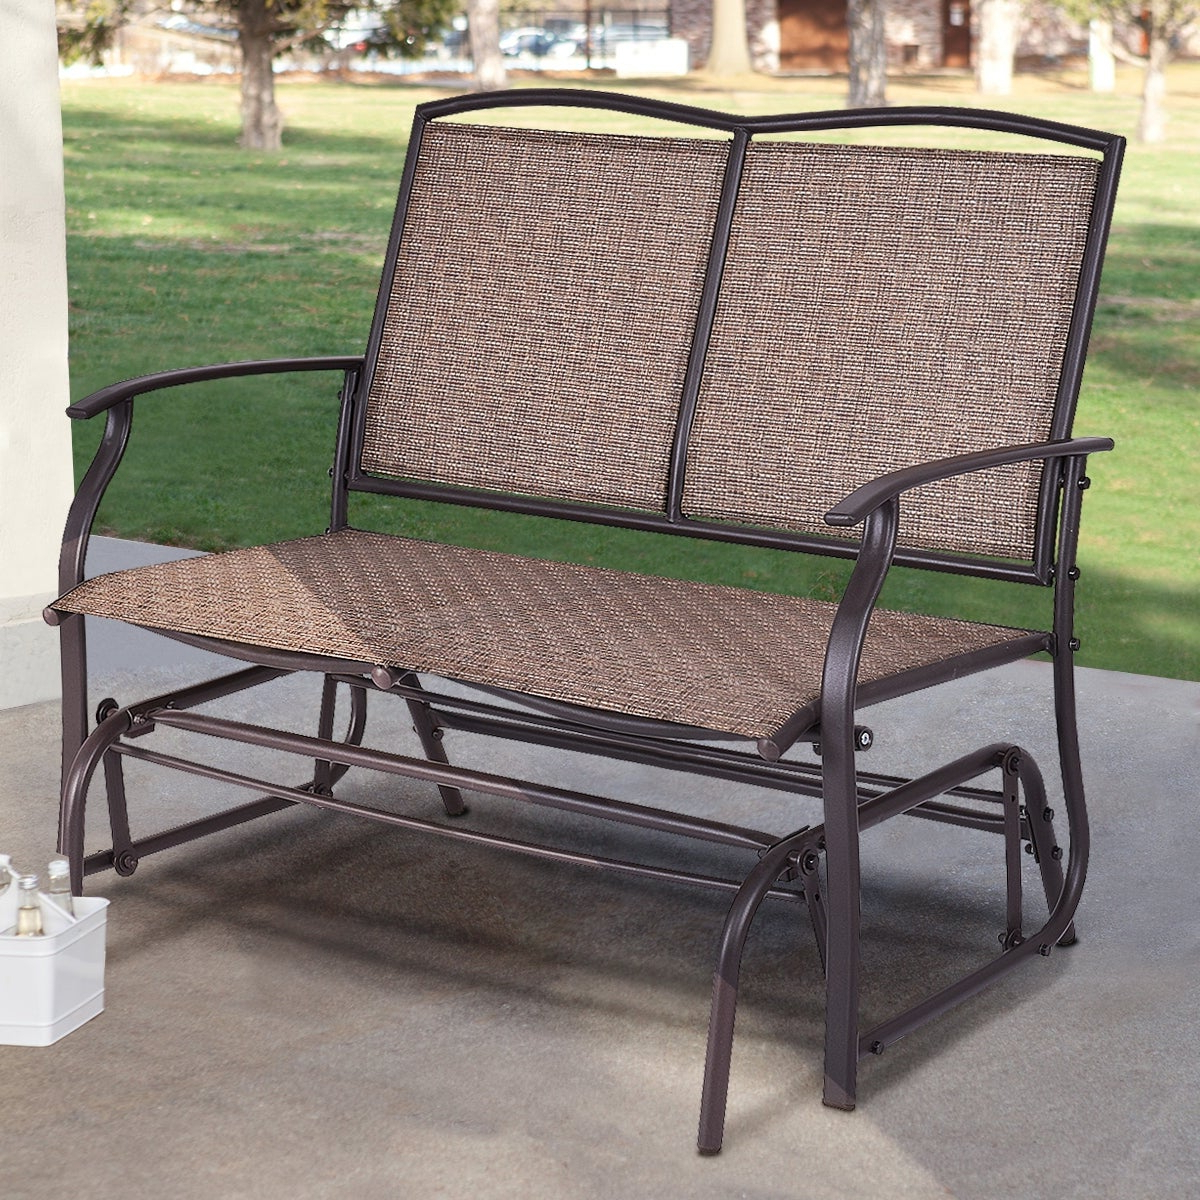 Costway Patio Glider Rocking Bench Double 2 Person Chair Loveseat Armchair Backyard With Regard To Most Recently Released Double Glider Benches With Cushion (View 19 of 30)